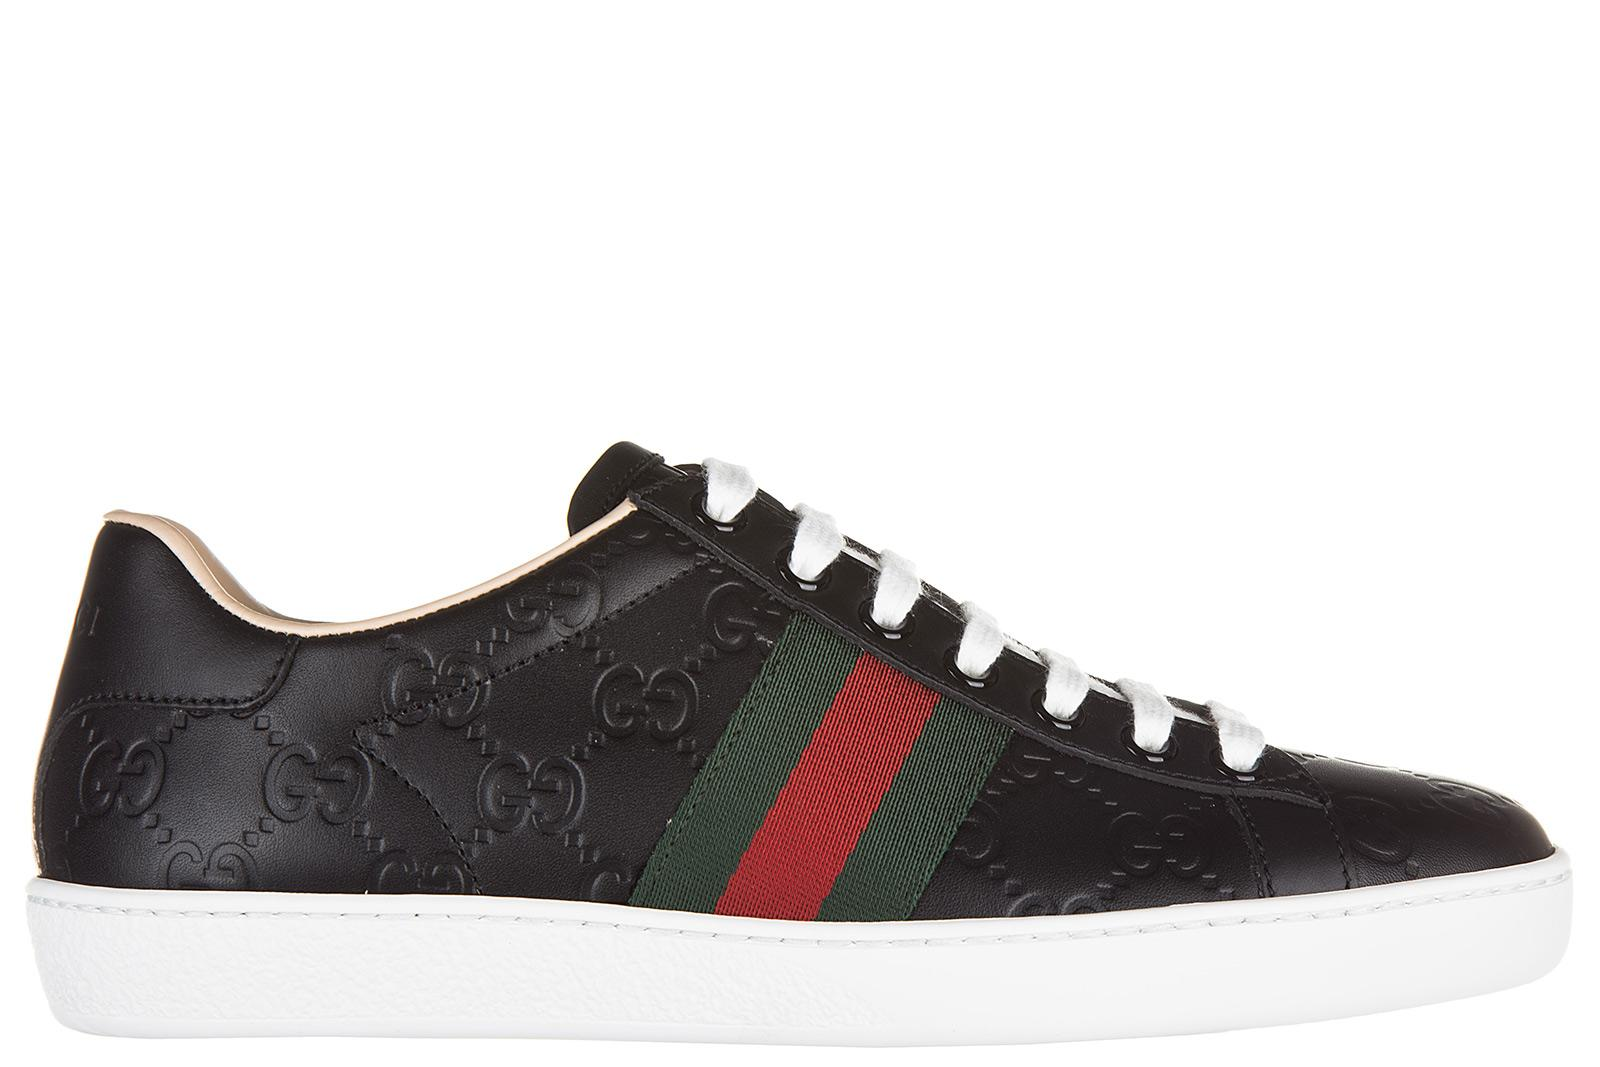 8e29833a5dd Gucci Women S Shoes Leather Trainers Sneakers Signature In Black ...